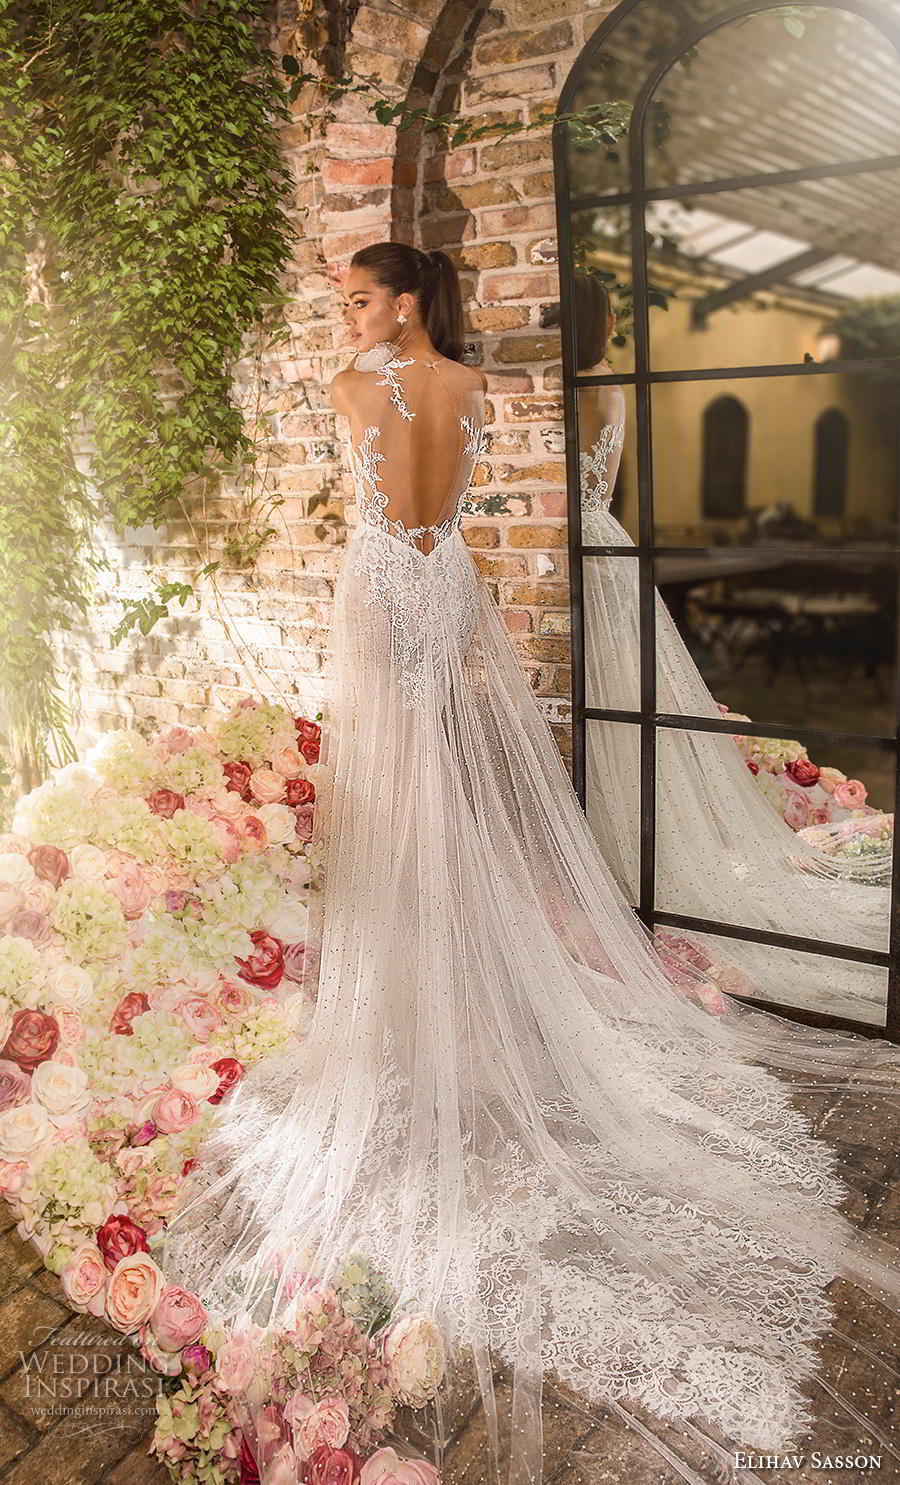 elihav sasson 2019 bridal sleeveless one shoulder heavily embellished bodice elegant fit and flare sheath wedding dress keyhole back chapel train (9) bv